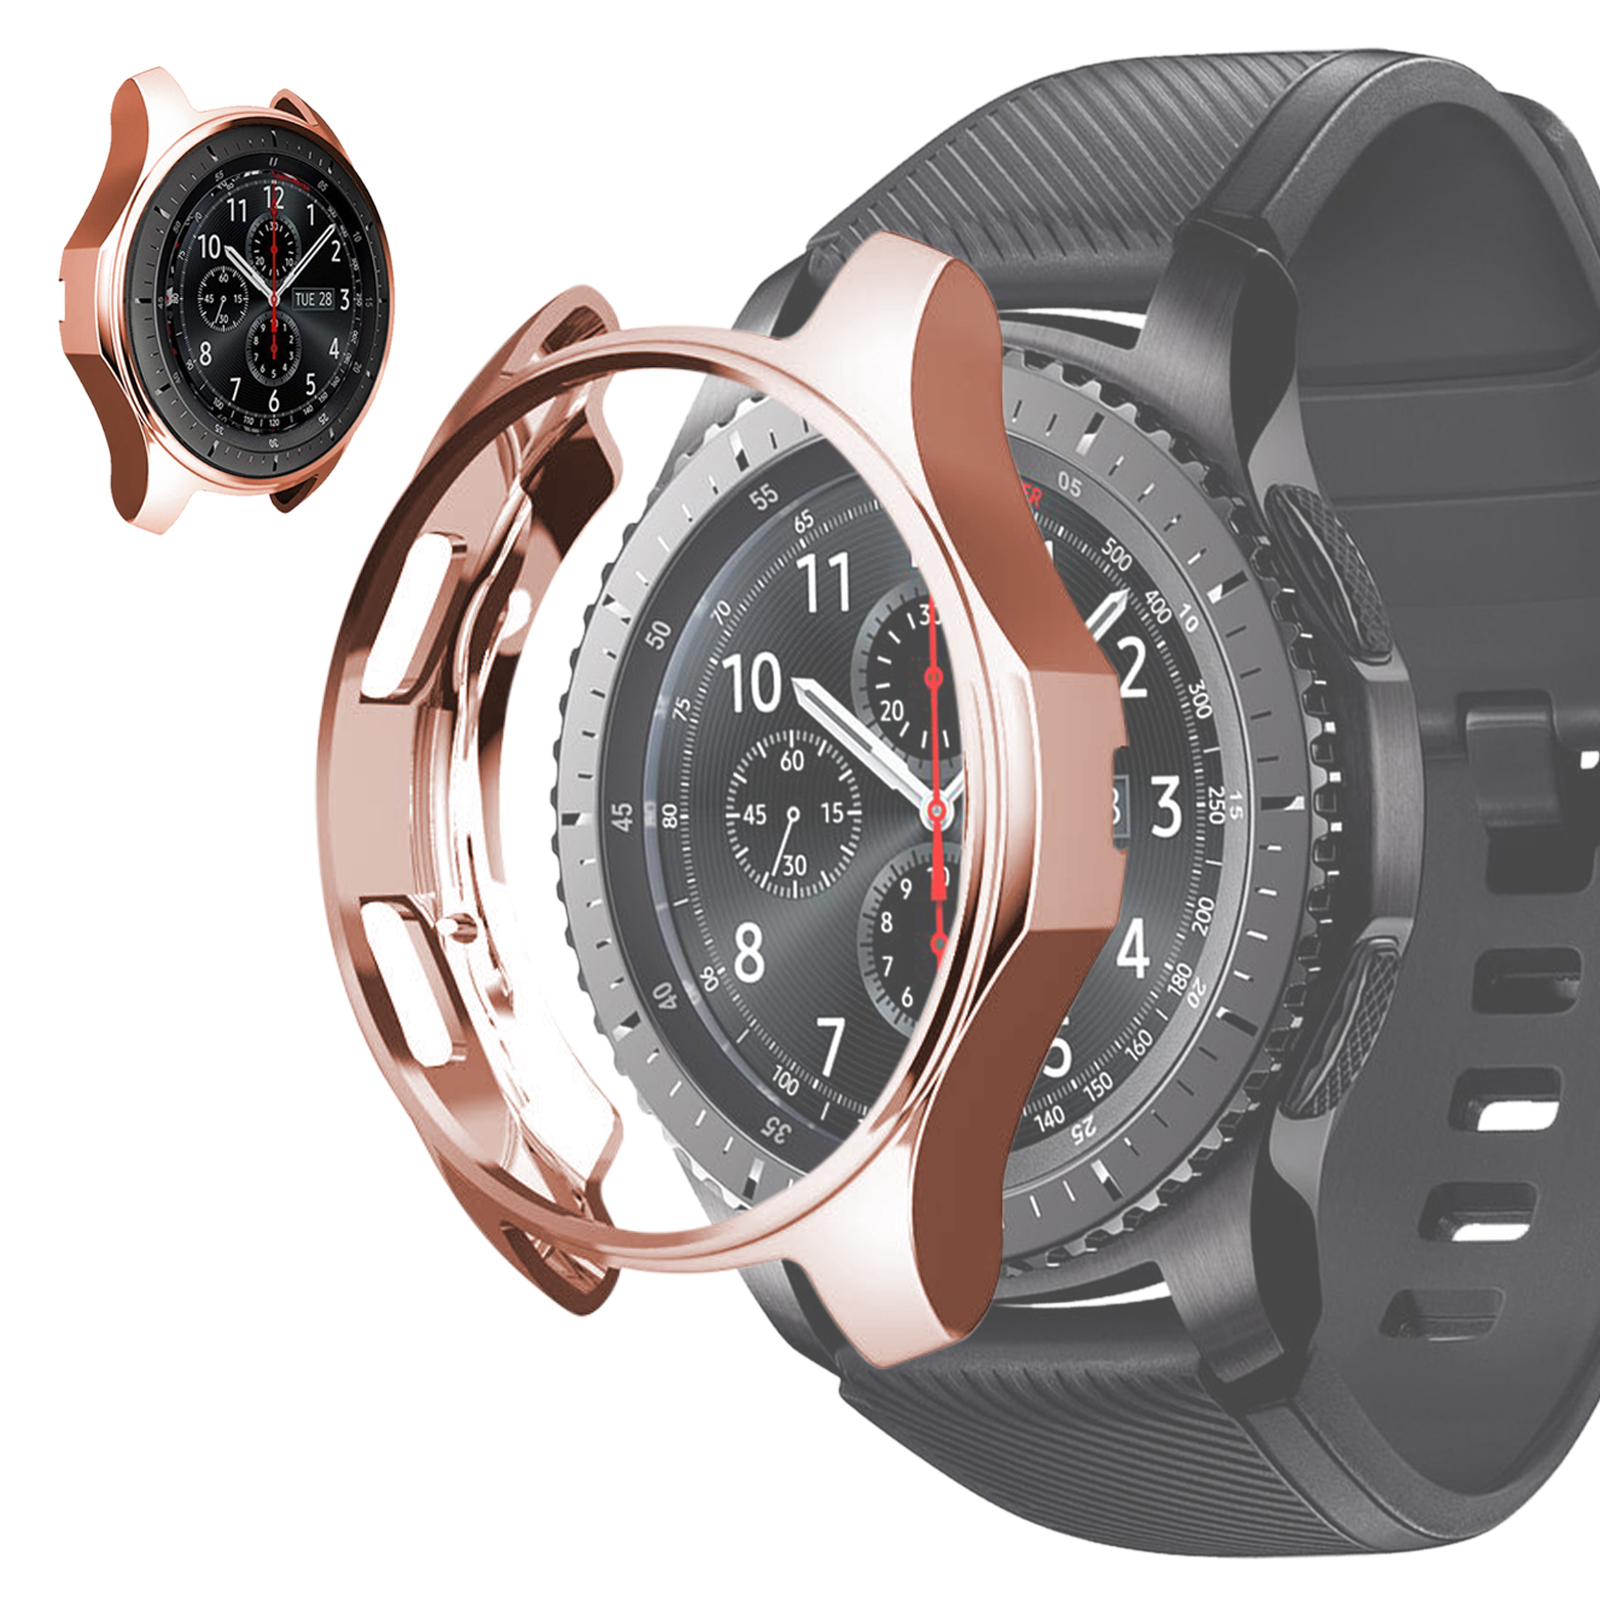 Soft-TPU-Slim-Smart-Watch-Case-Cover-For-Samsung-Gear-S3-Frontier-Galaxy-46mm thumbnail 12